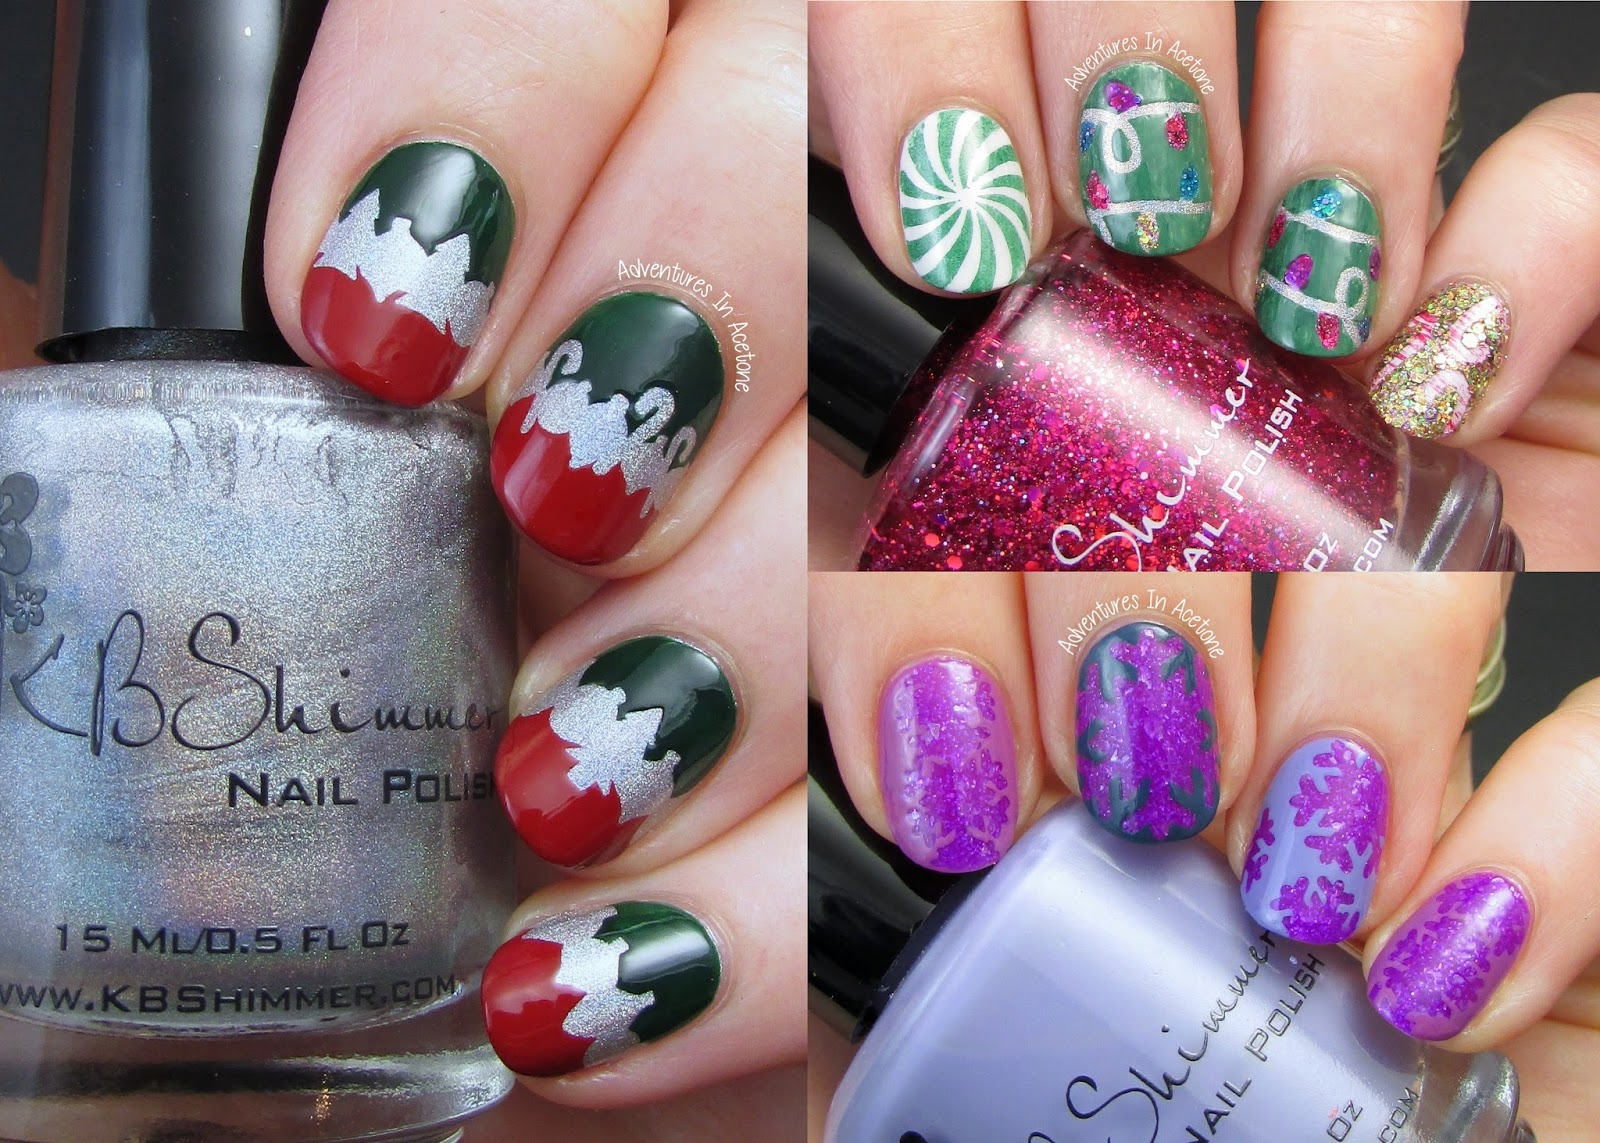 KBShimmer Winter Holiday Vinyl Nail Art! - Adventures In Acetone